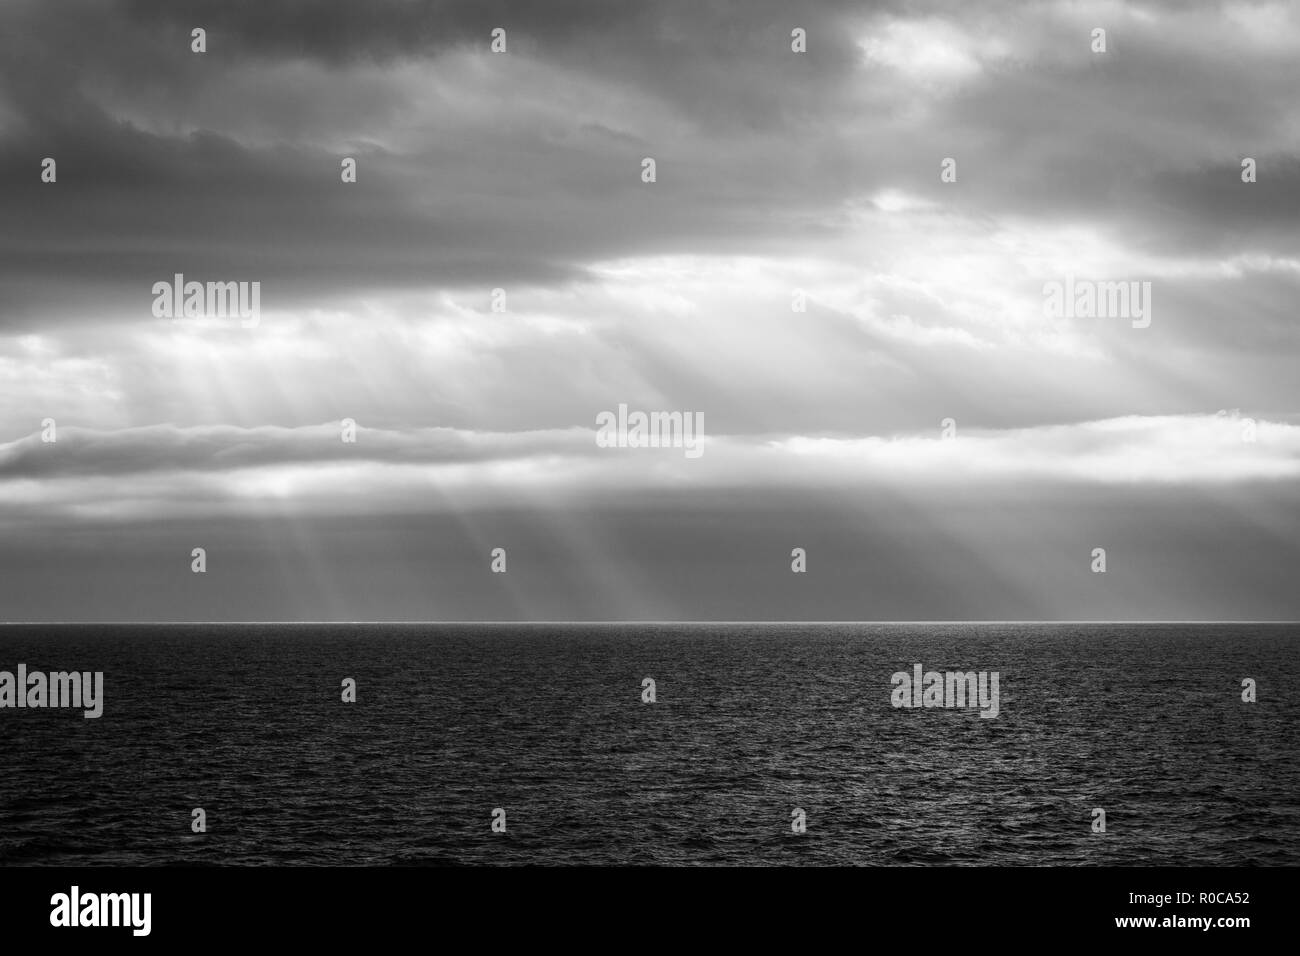 Crepuscular rays (God's hands) over the Gulf of Saint Lawrence as seen from the ferry to the Magdalen Islands. - Stock Image